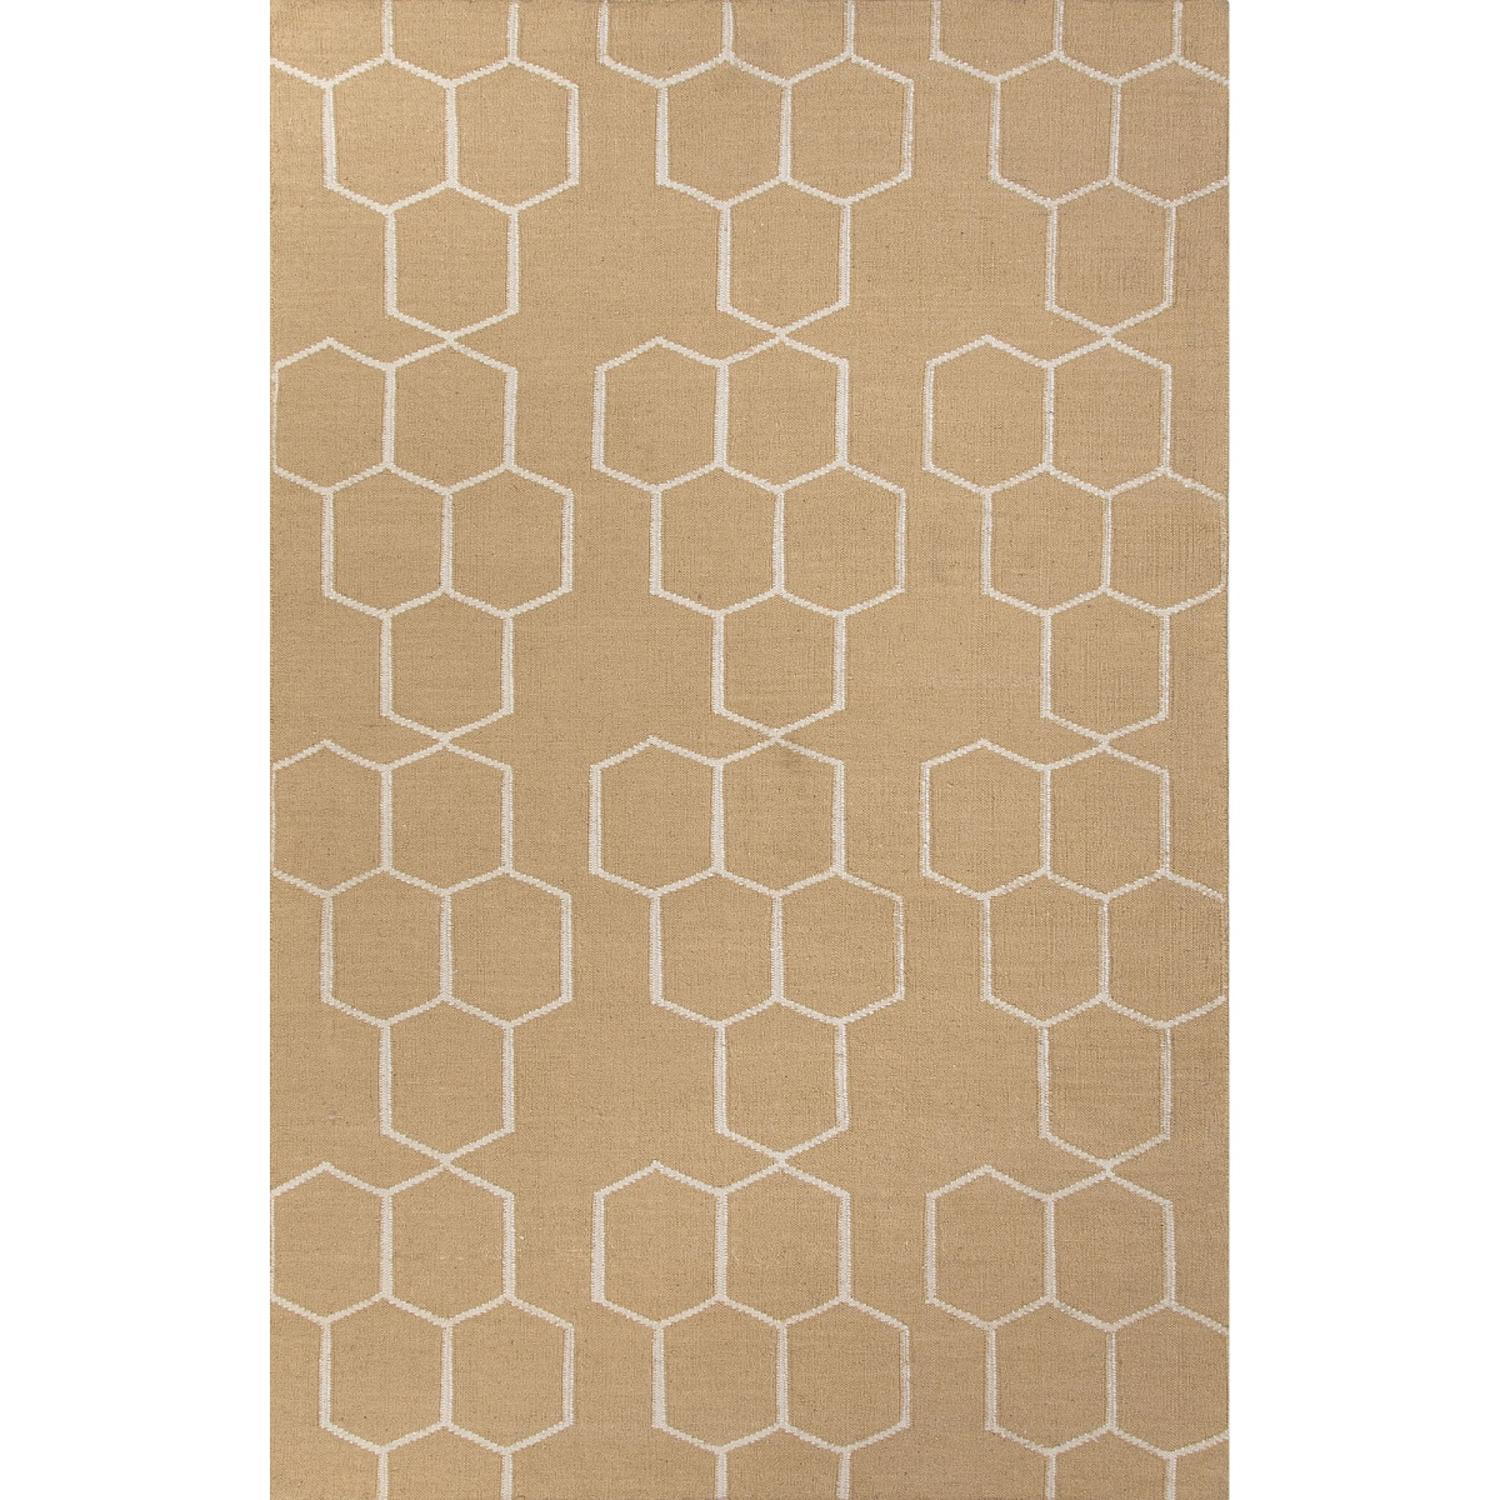 5' x 8'  Sandstone and Off-White Flat-Weave Abdel Reversible Wool Area Throw Rug